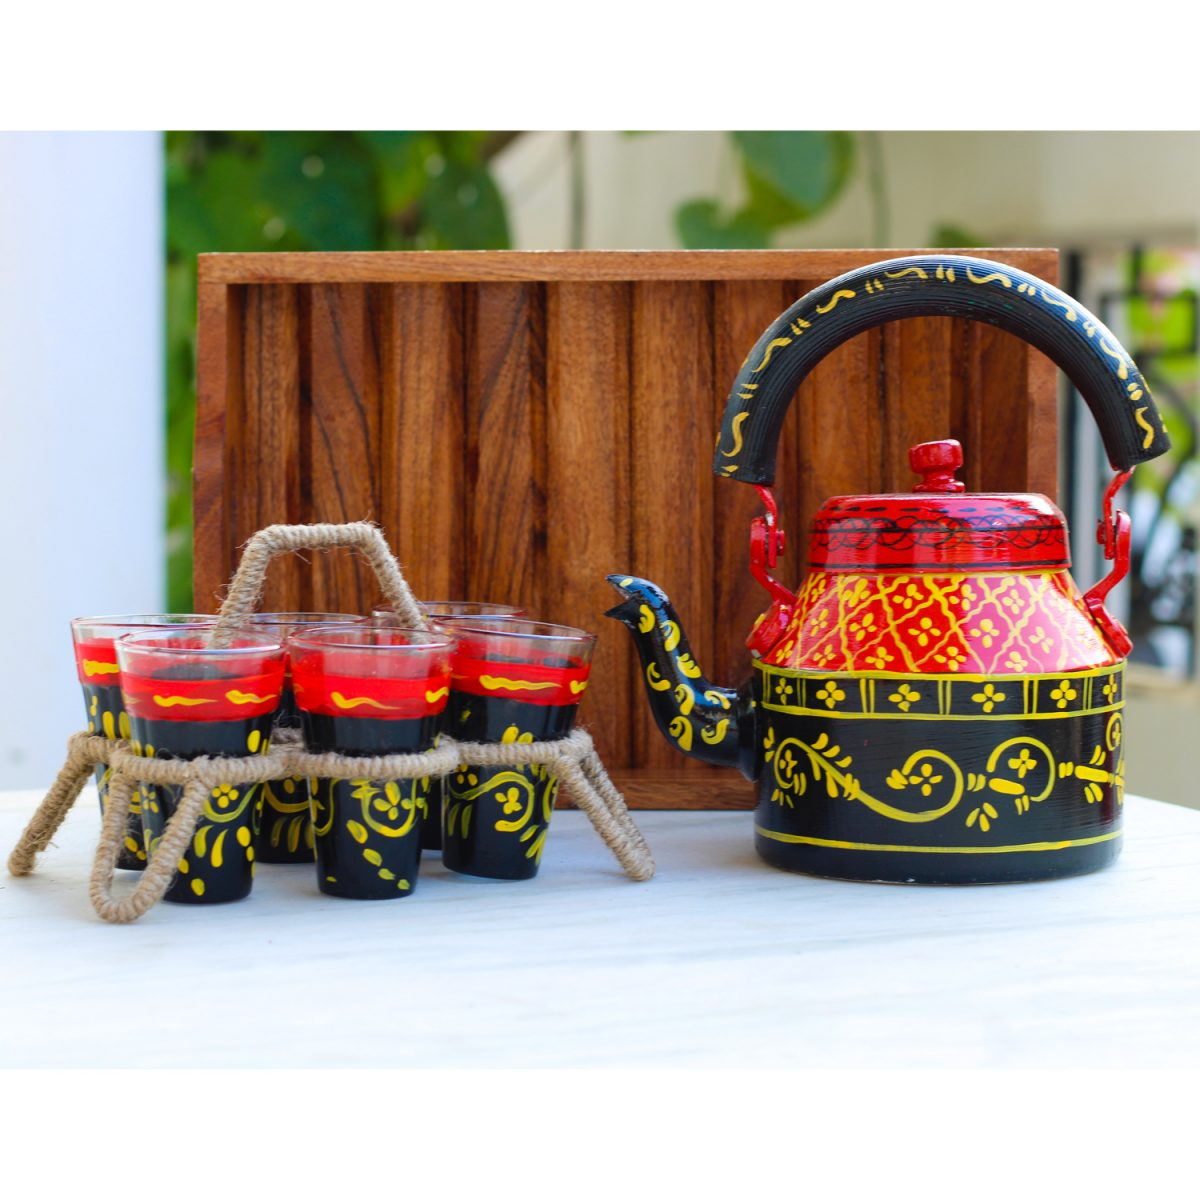 Handpainted Kettle Set 5153-S